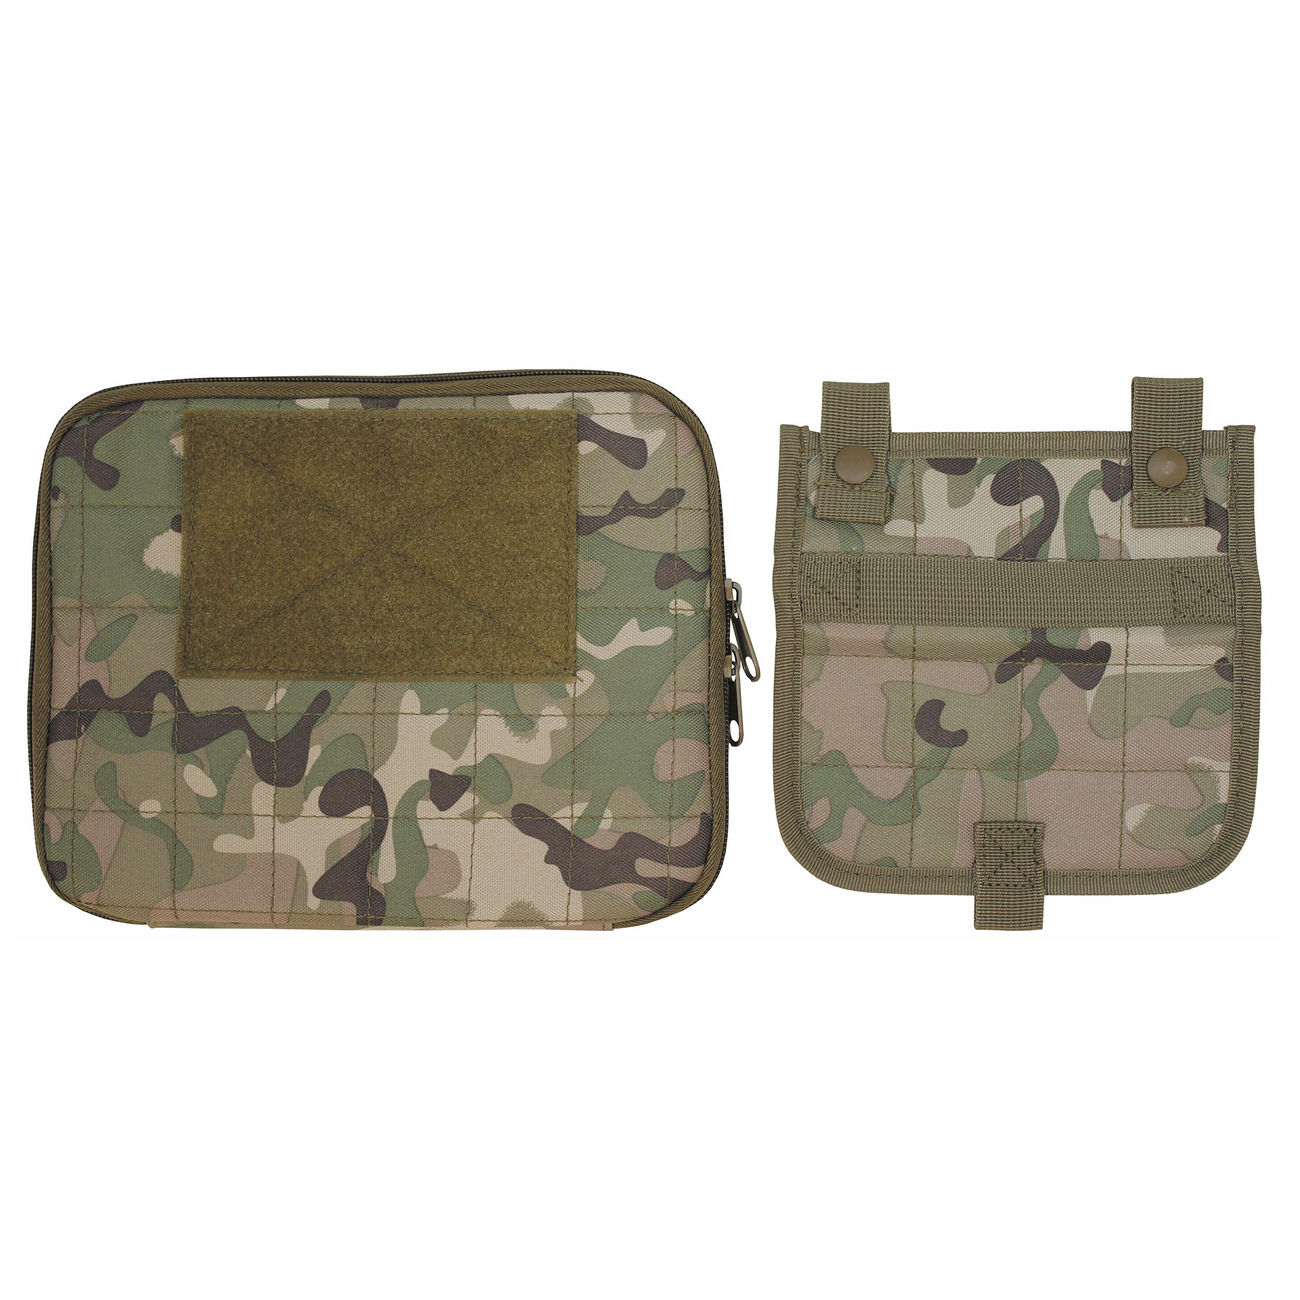 MFH Tablet-Tasche Molle operation camo 3